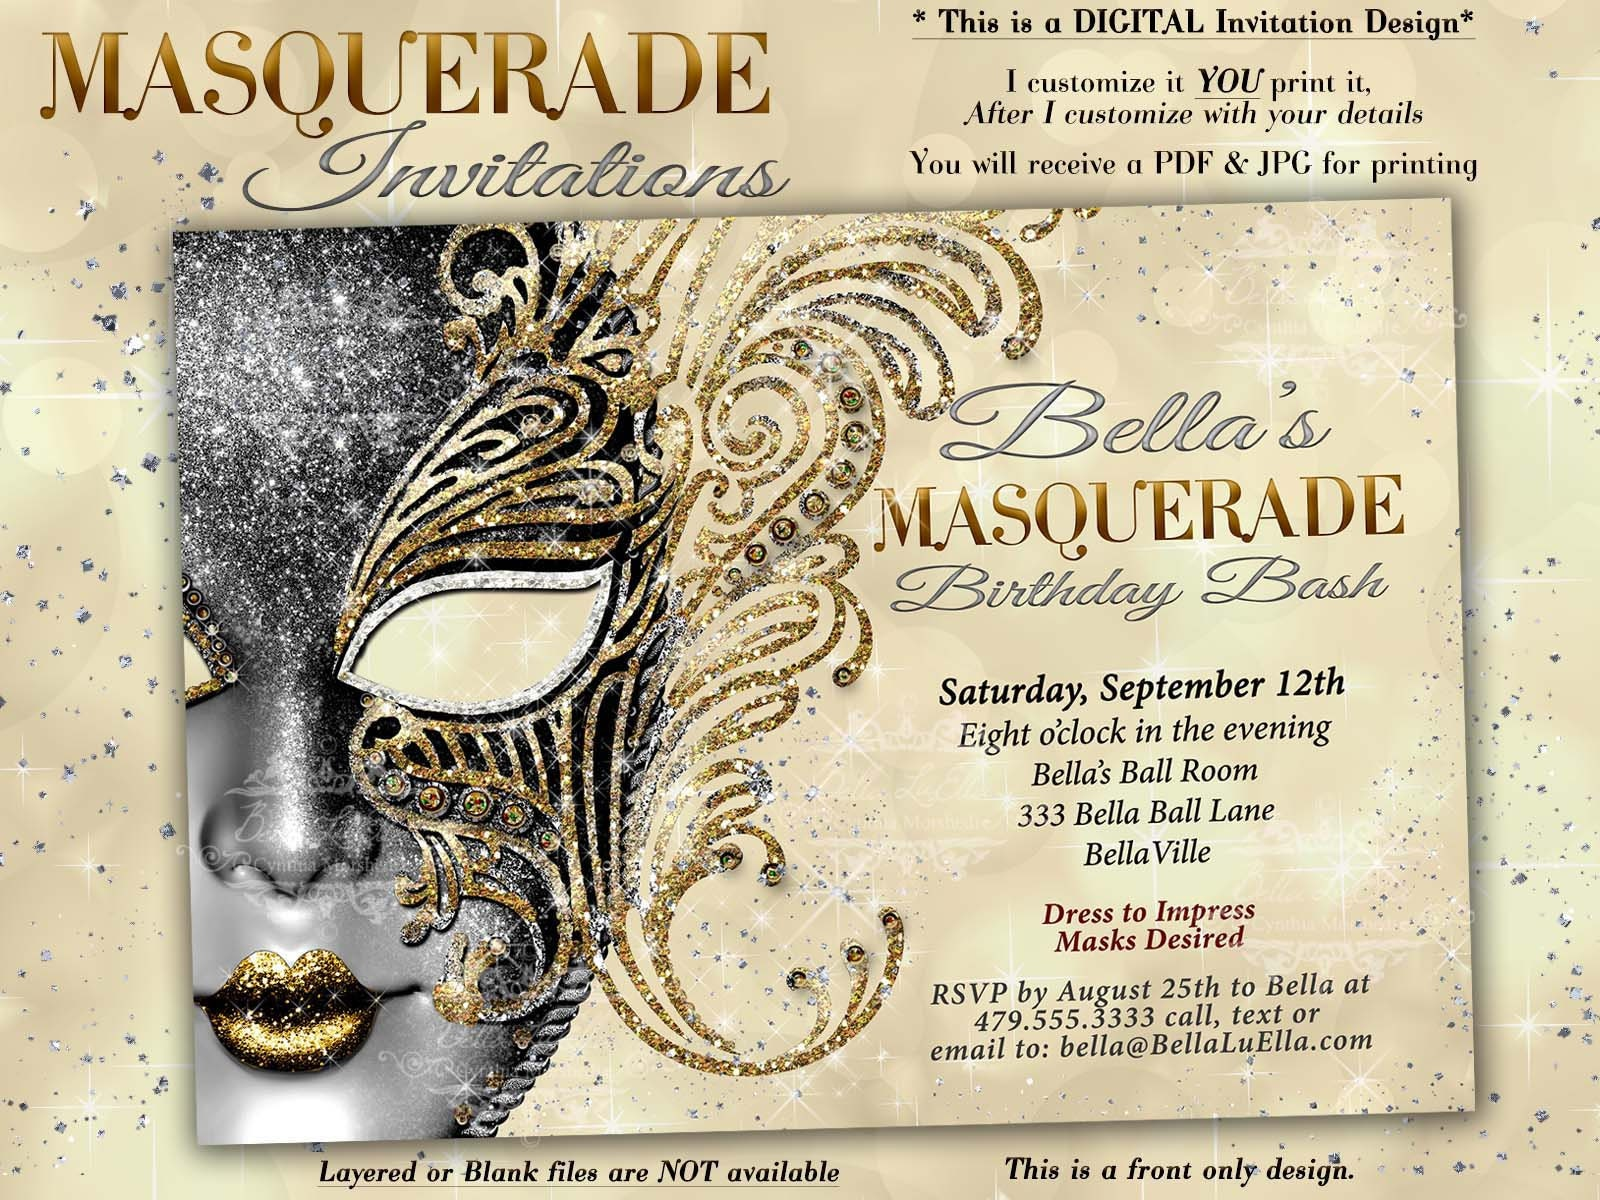 Masquerade Party Invitation Mardi Gras Invitations